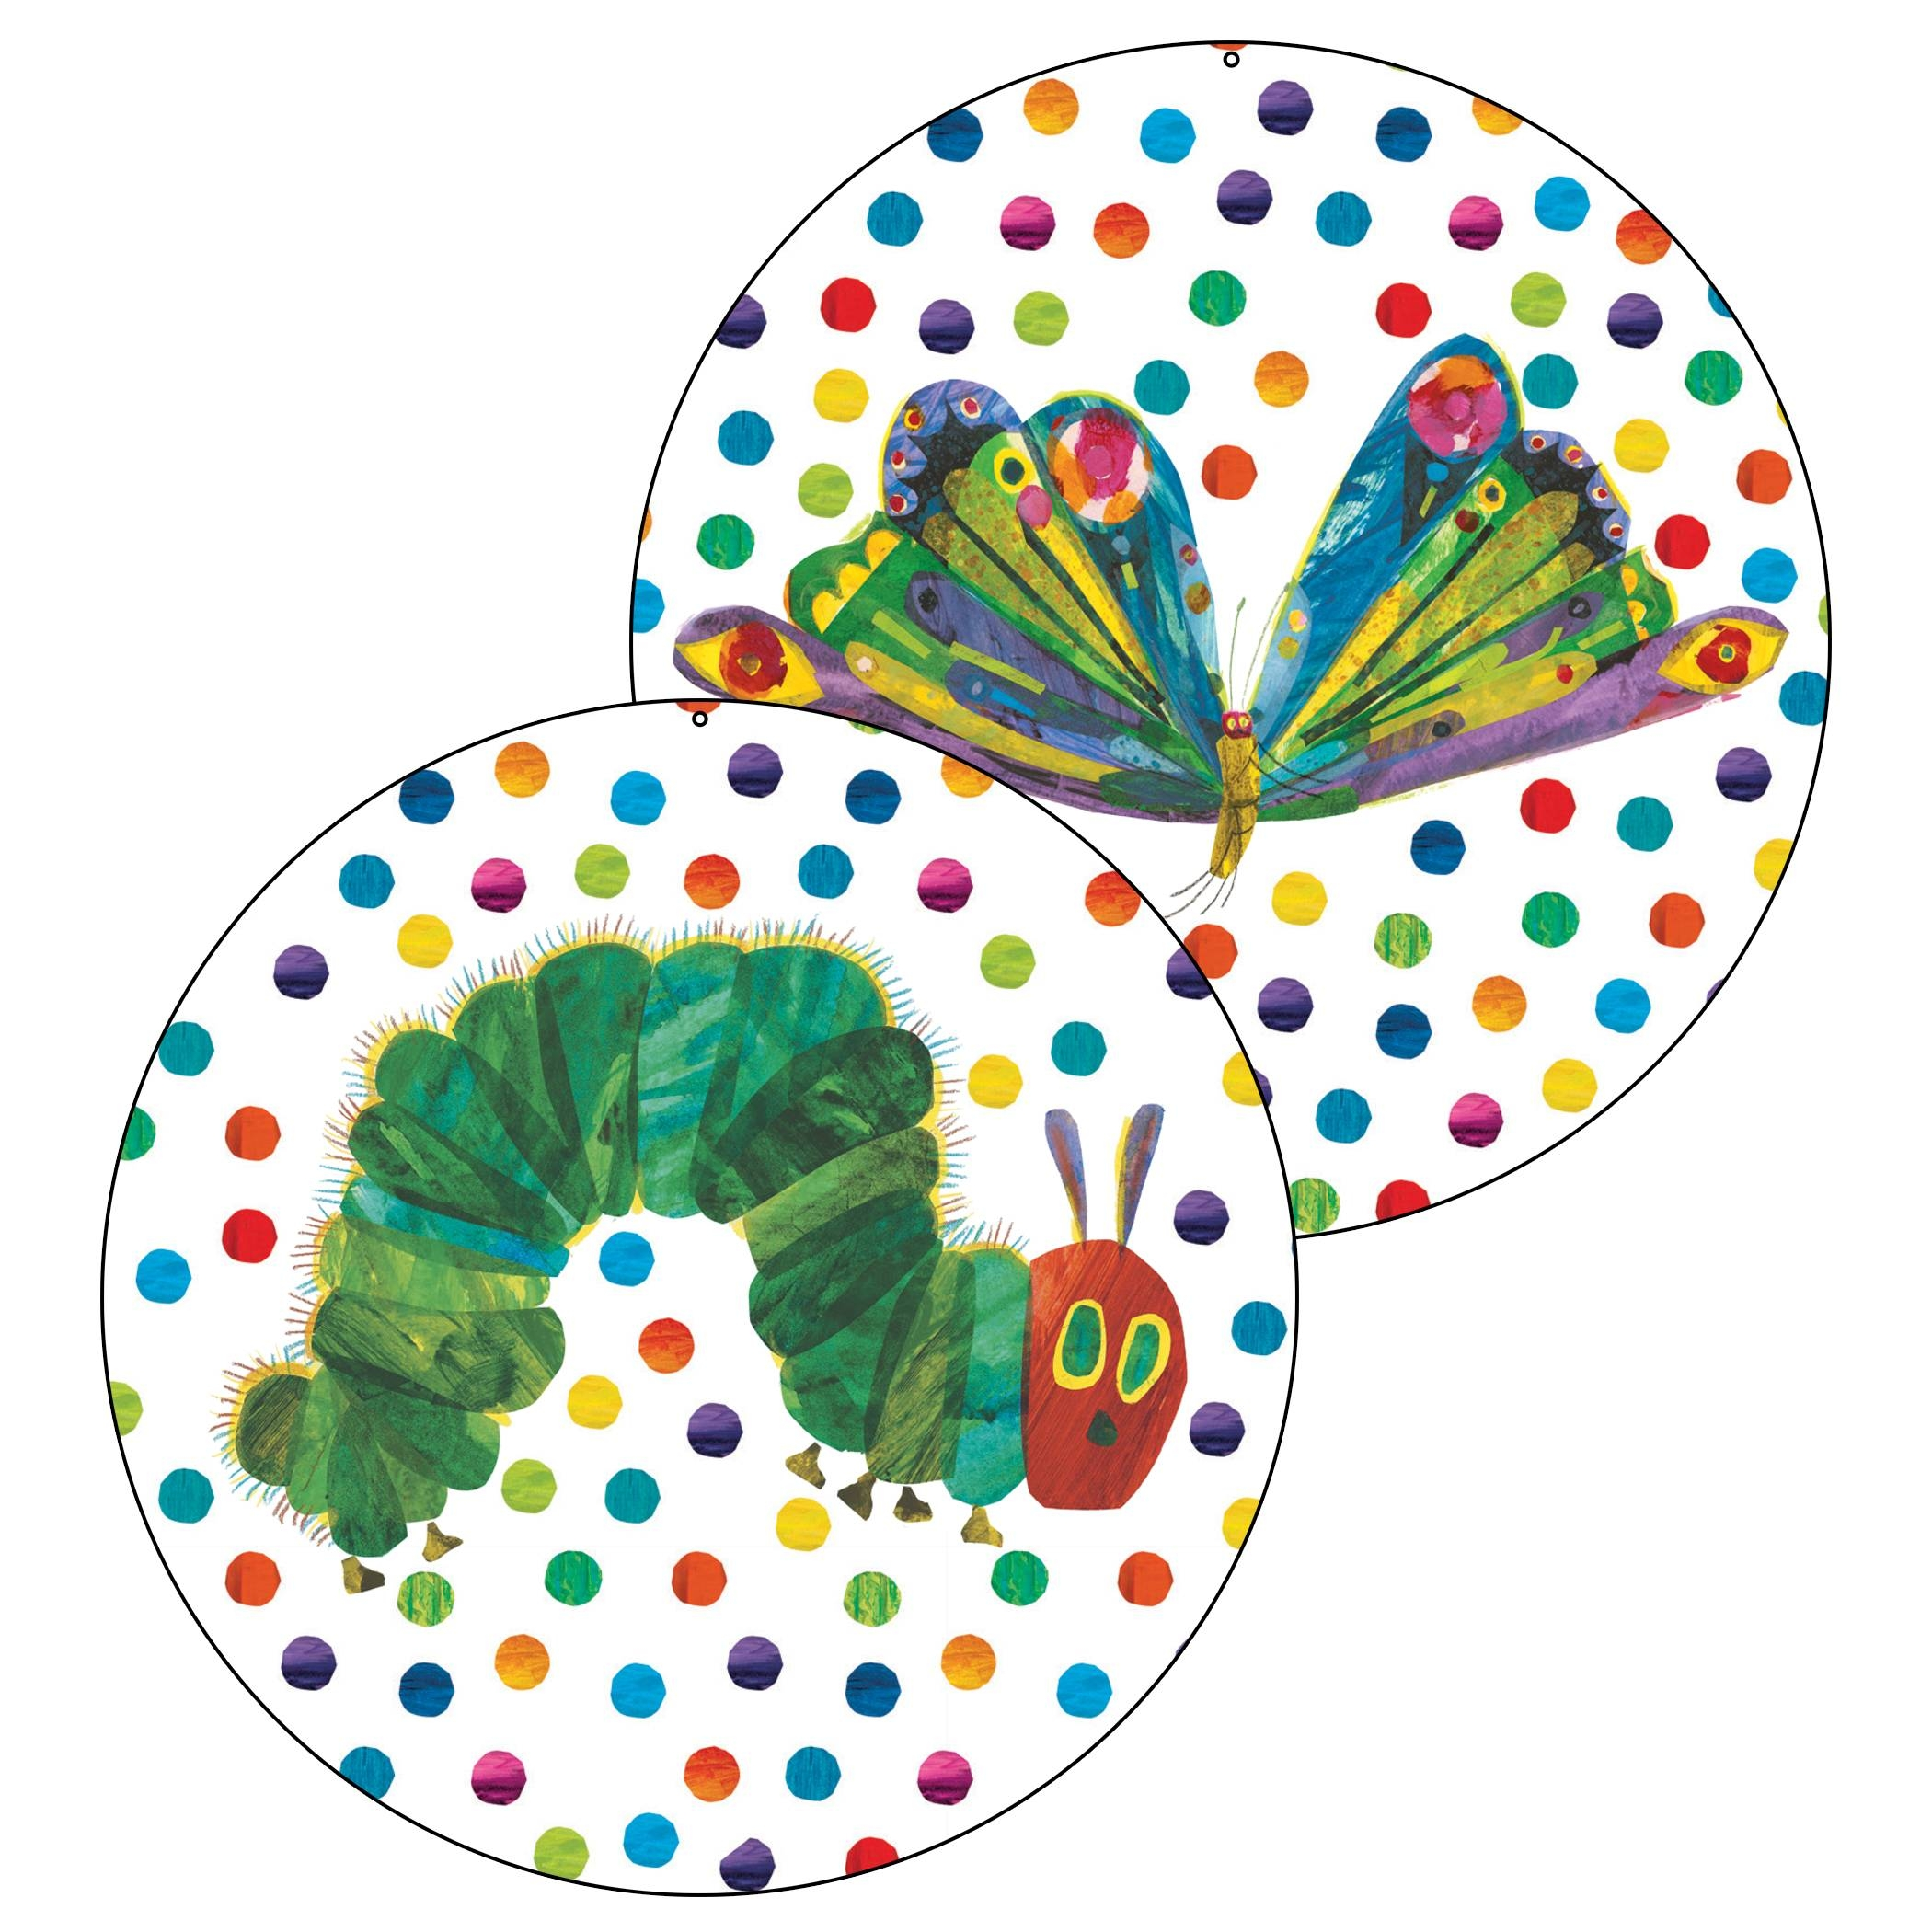 Very Hungry Caterpillar Jumbo Circle Decoration | The Eric Carle For 2018 The Very Hungry Caterpillar Wall Art (View 19 of 25)